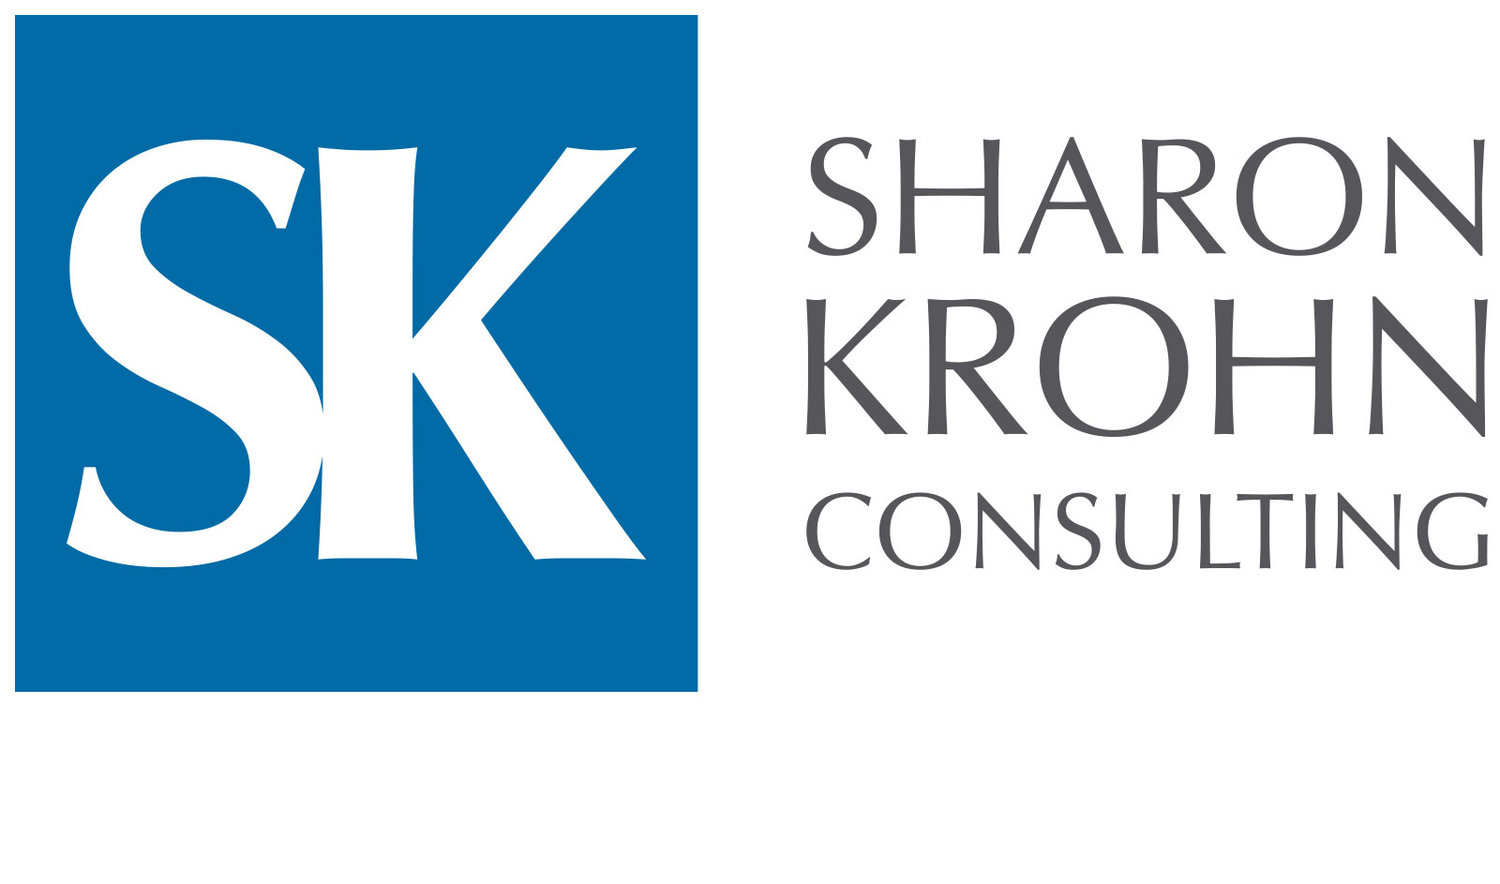 Sharon Krohn Consulting